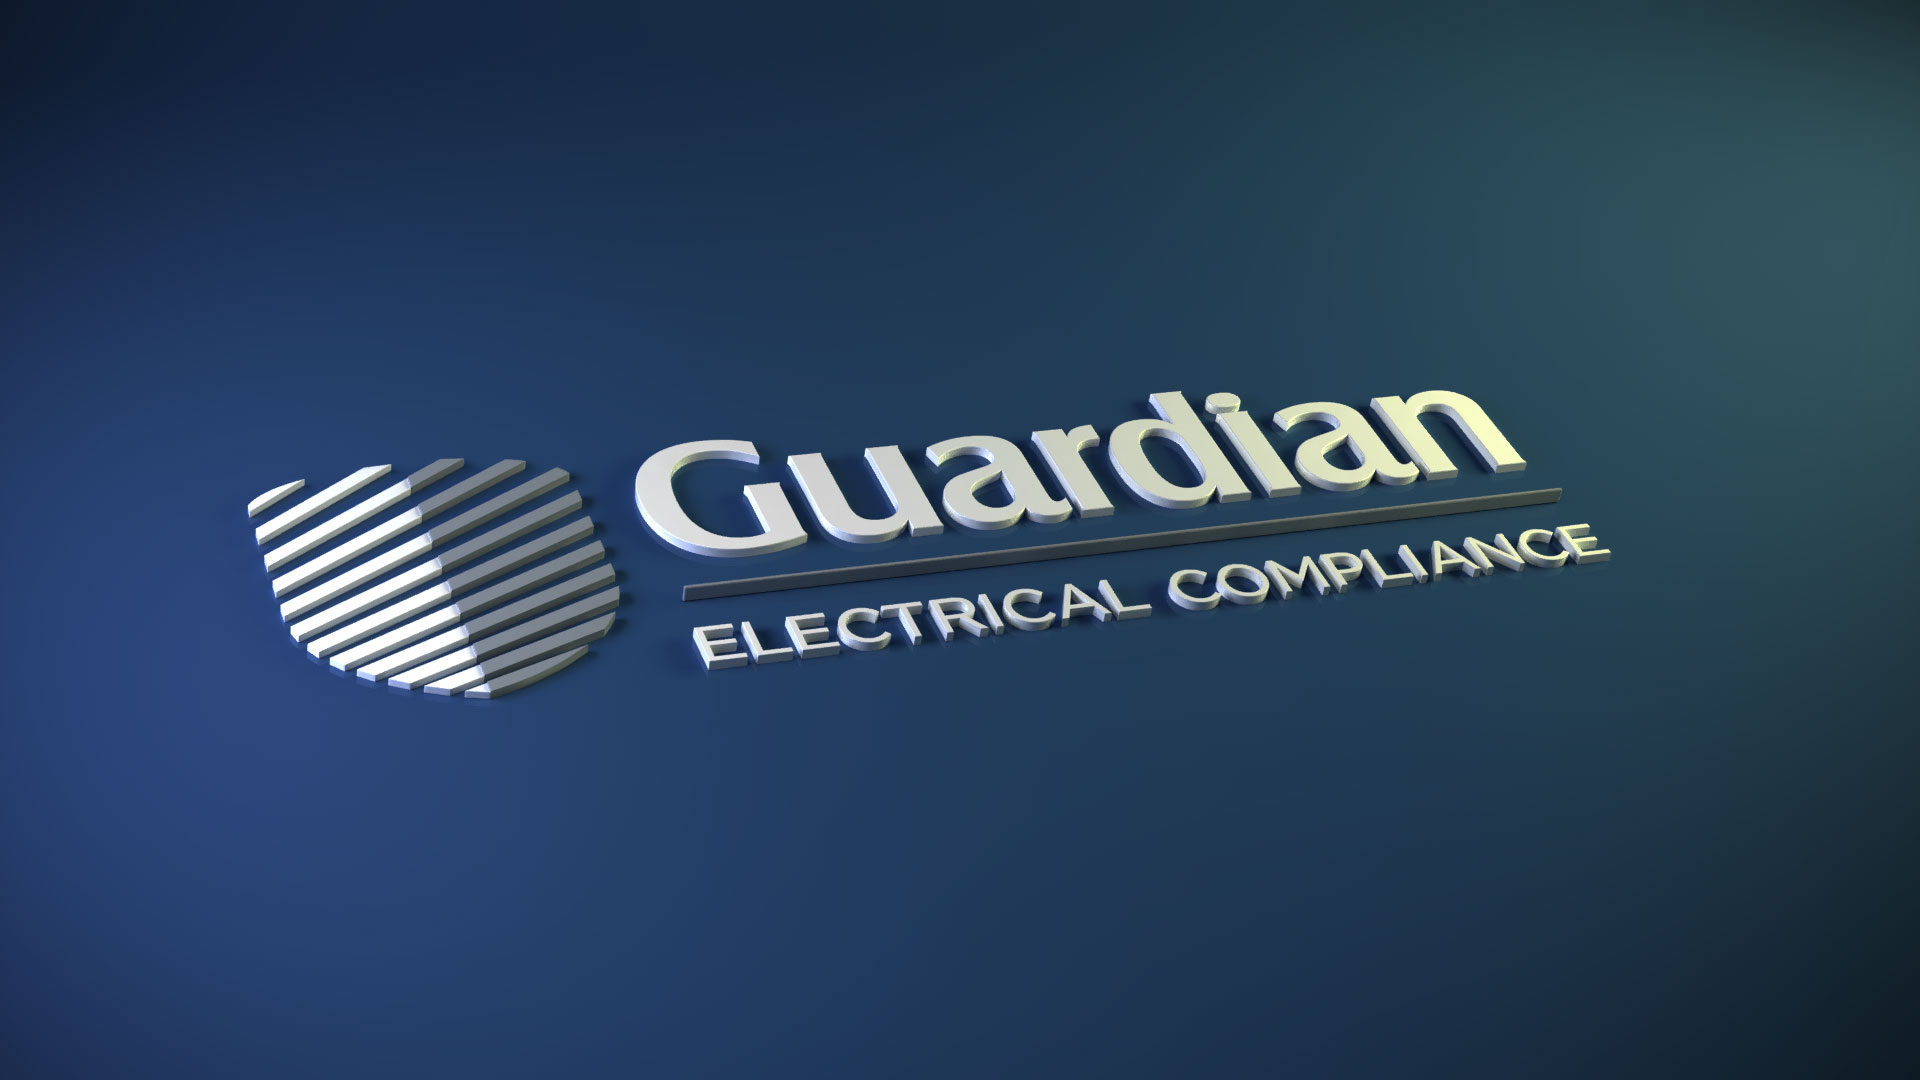 Guardian Electrical Compliance based in Sheffield will become part of the ever growing PTSG Group